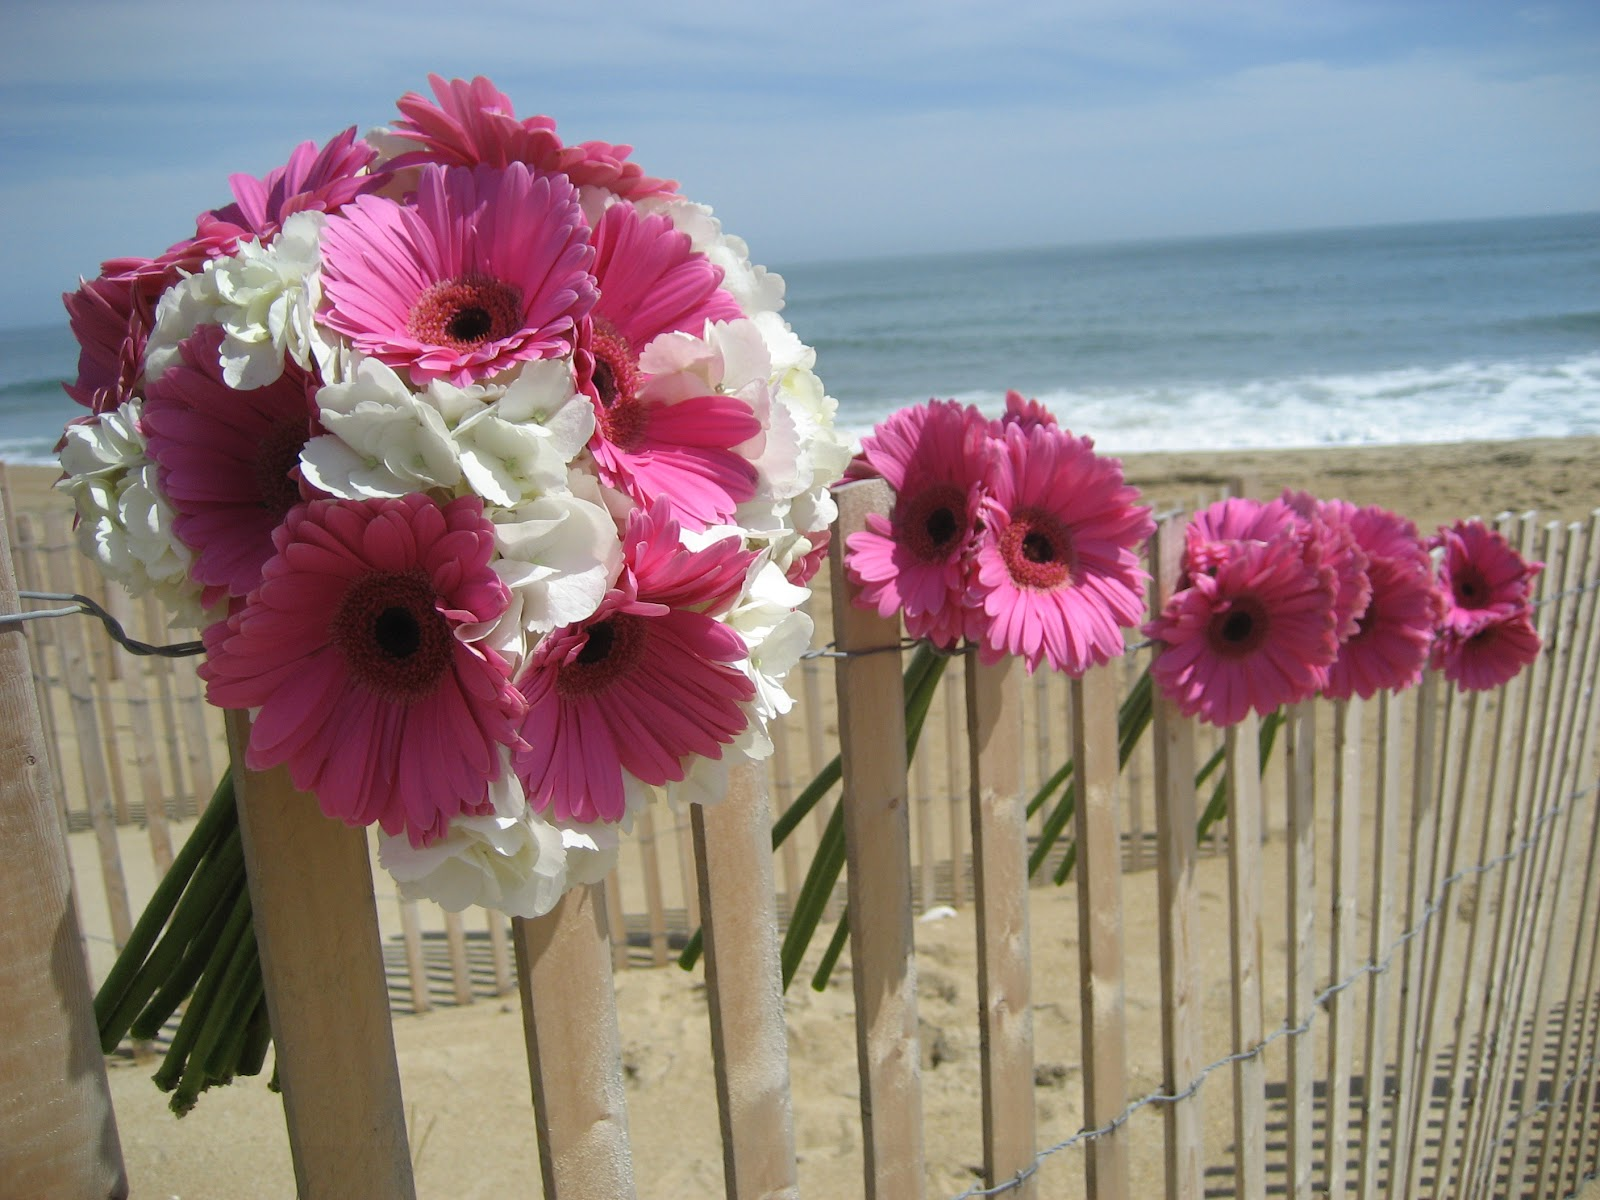 Bouquet Friday - Hot Pink - The Embellishers - Outer Banks, NC